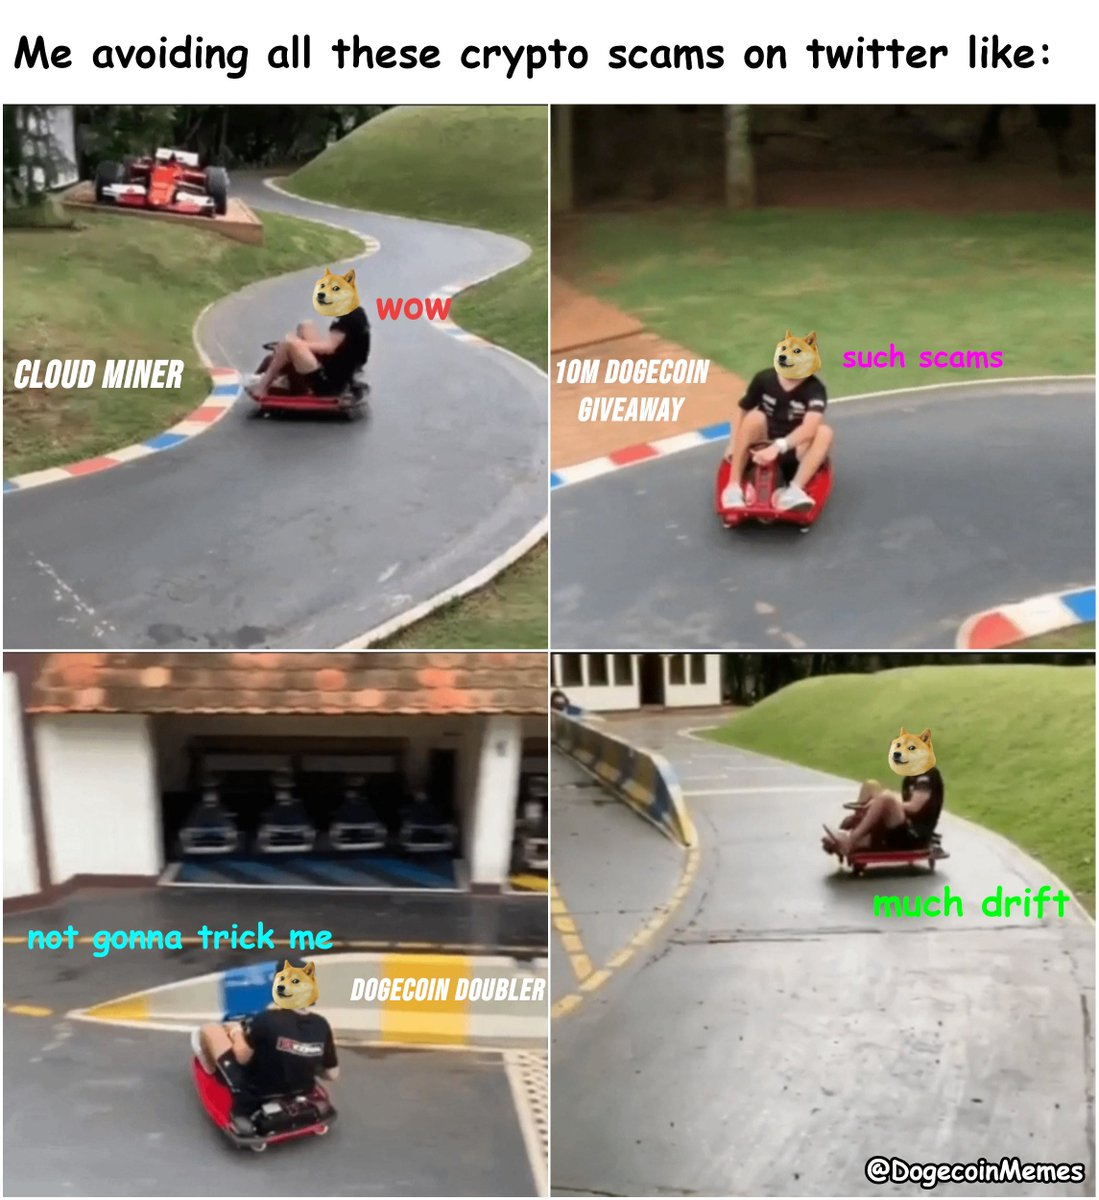 #Dogecoin #memes #crypto #cryptocurrency #doge #tothemoon #wow #moonsoon #dogecoinmoon #thegoodstuff #muchfunny #suchmemes #happydoge #moon #buymoredoge #avoiding #scams #cloudmining #giveaway #double #staysafe